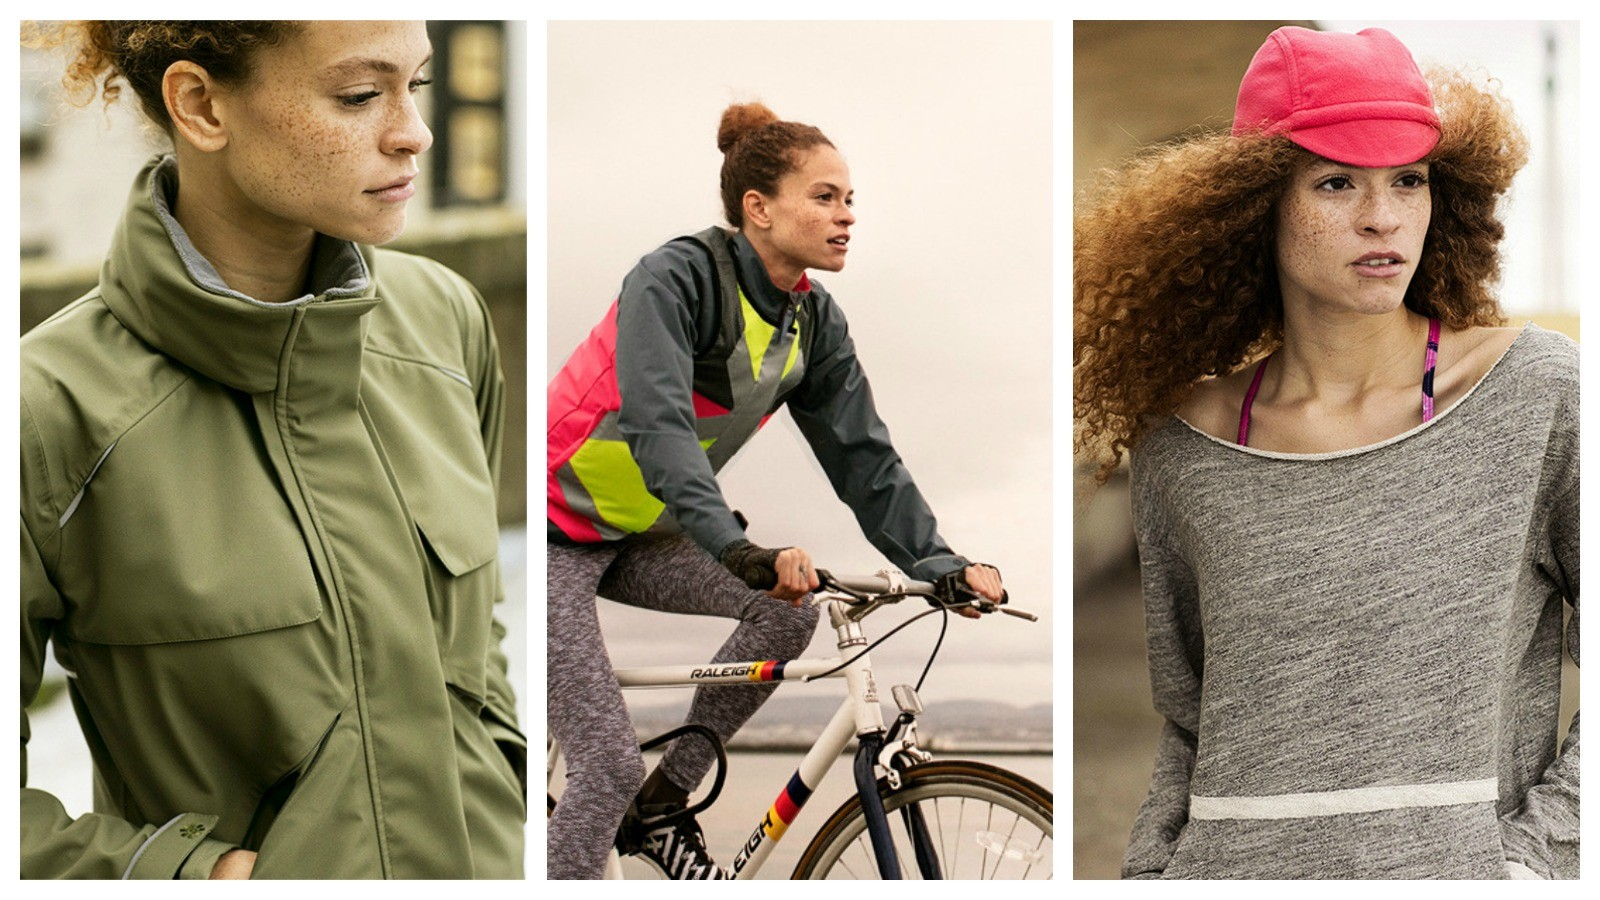 Commuter wear but without the usual utilitarian look by As Bold As